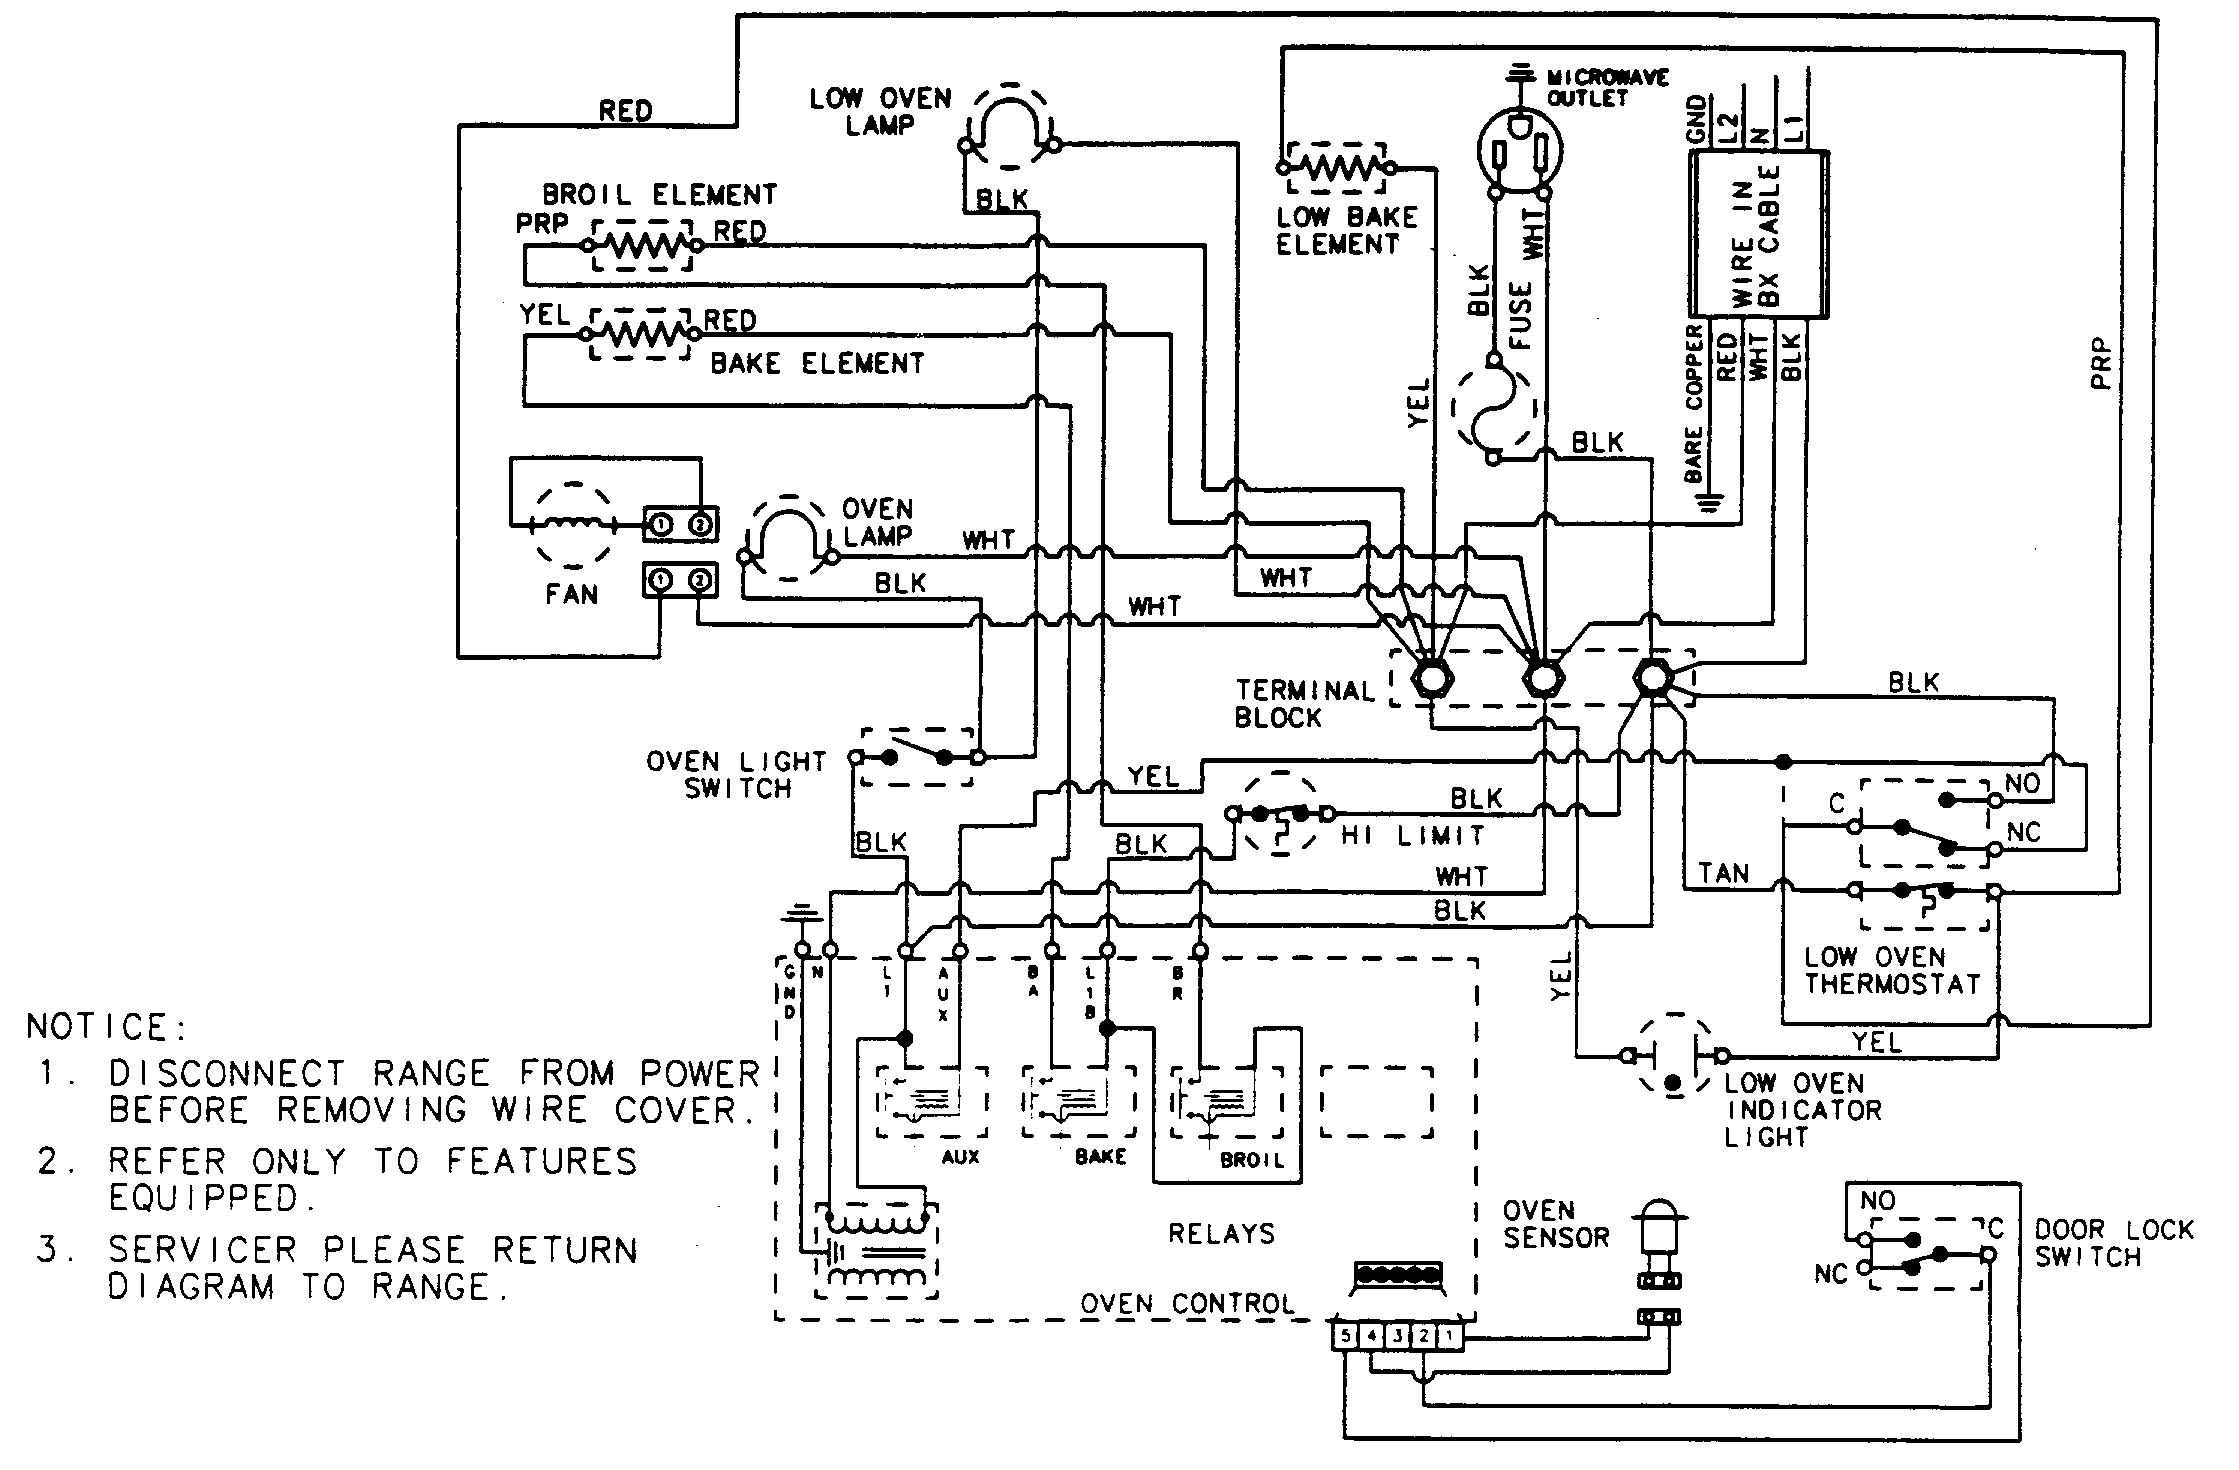 Maytag Gas Dryer Wiring Diagram likewise HB8j 12010 additionally appliancerepair additionally Whirlpool Refrigerator Parts Store likewise Appliance. on whirlpool refrigerator wiring diagram